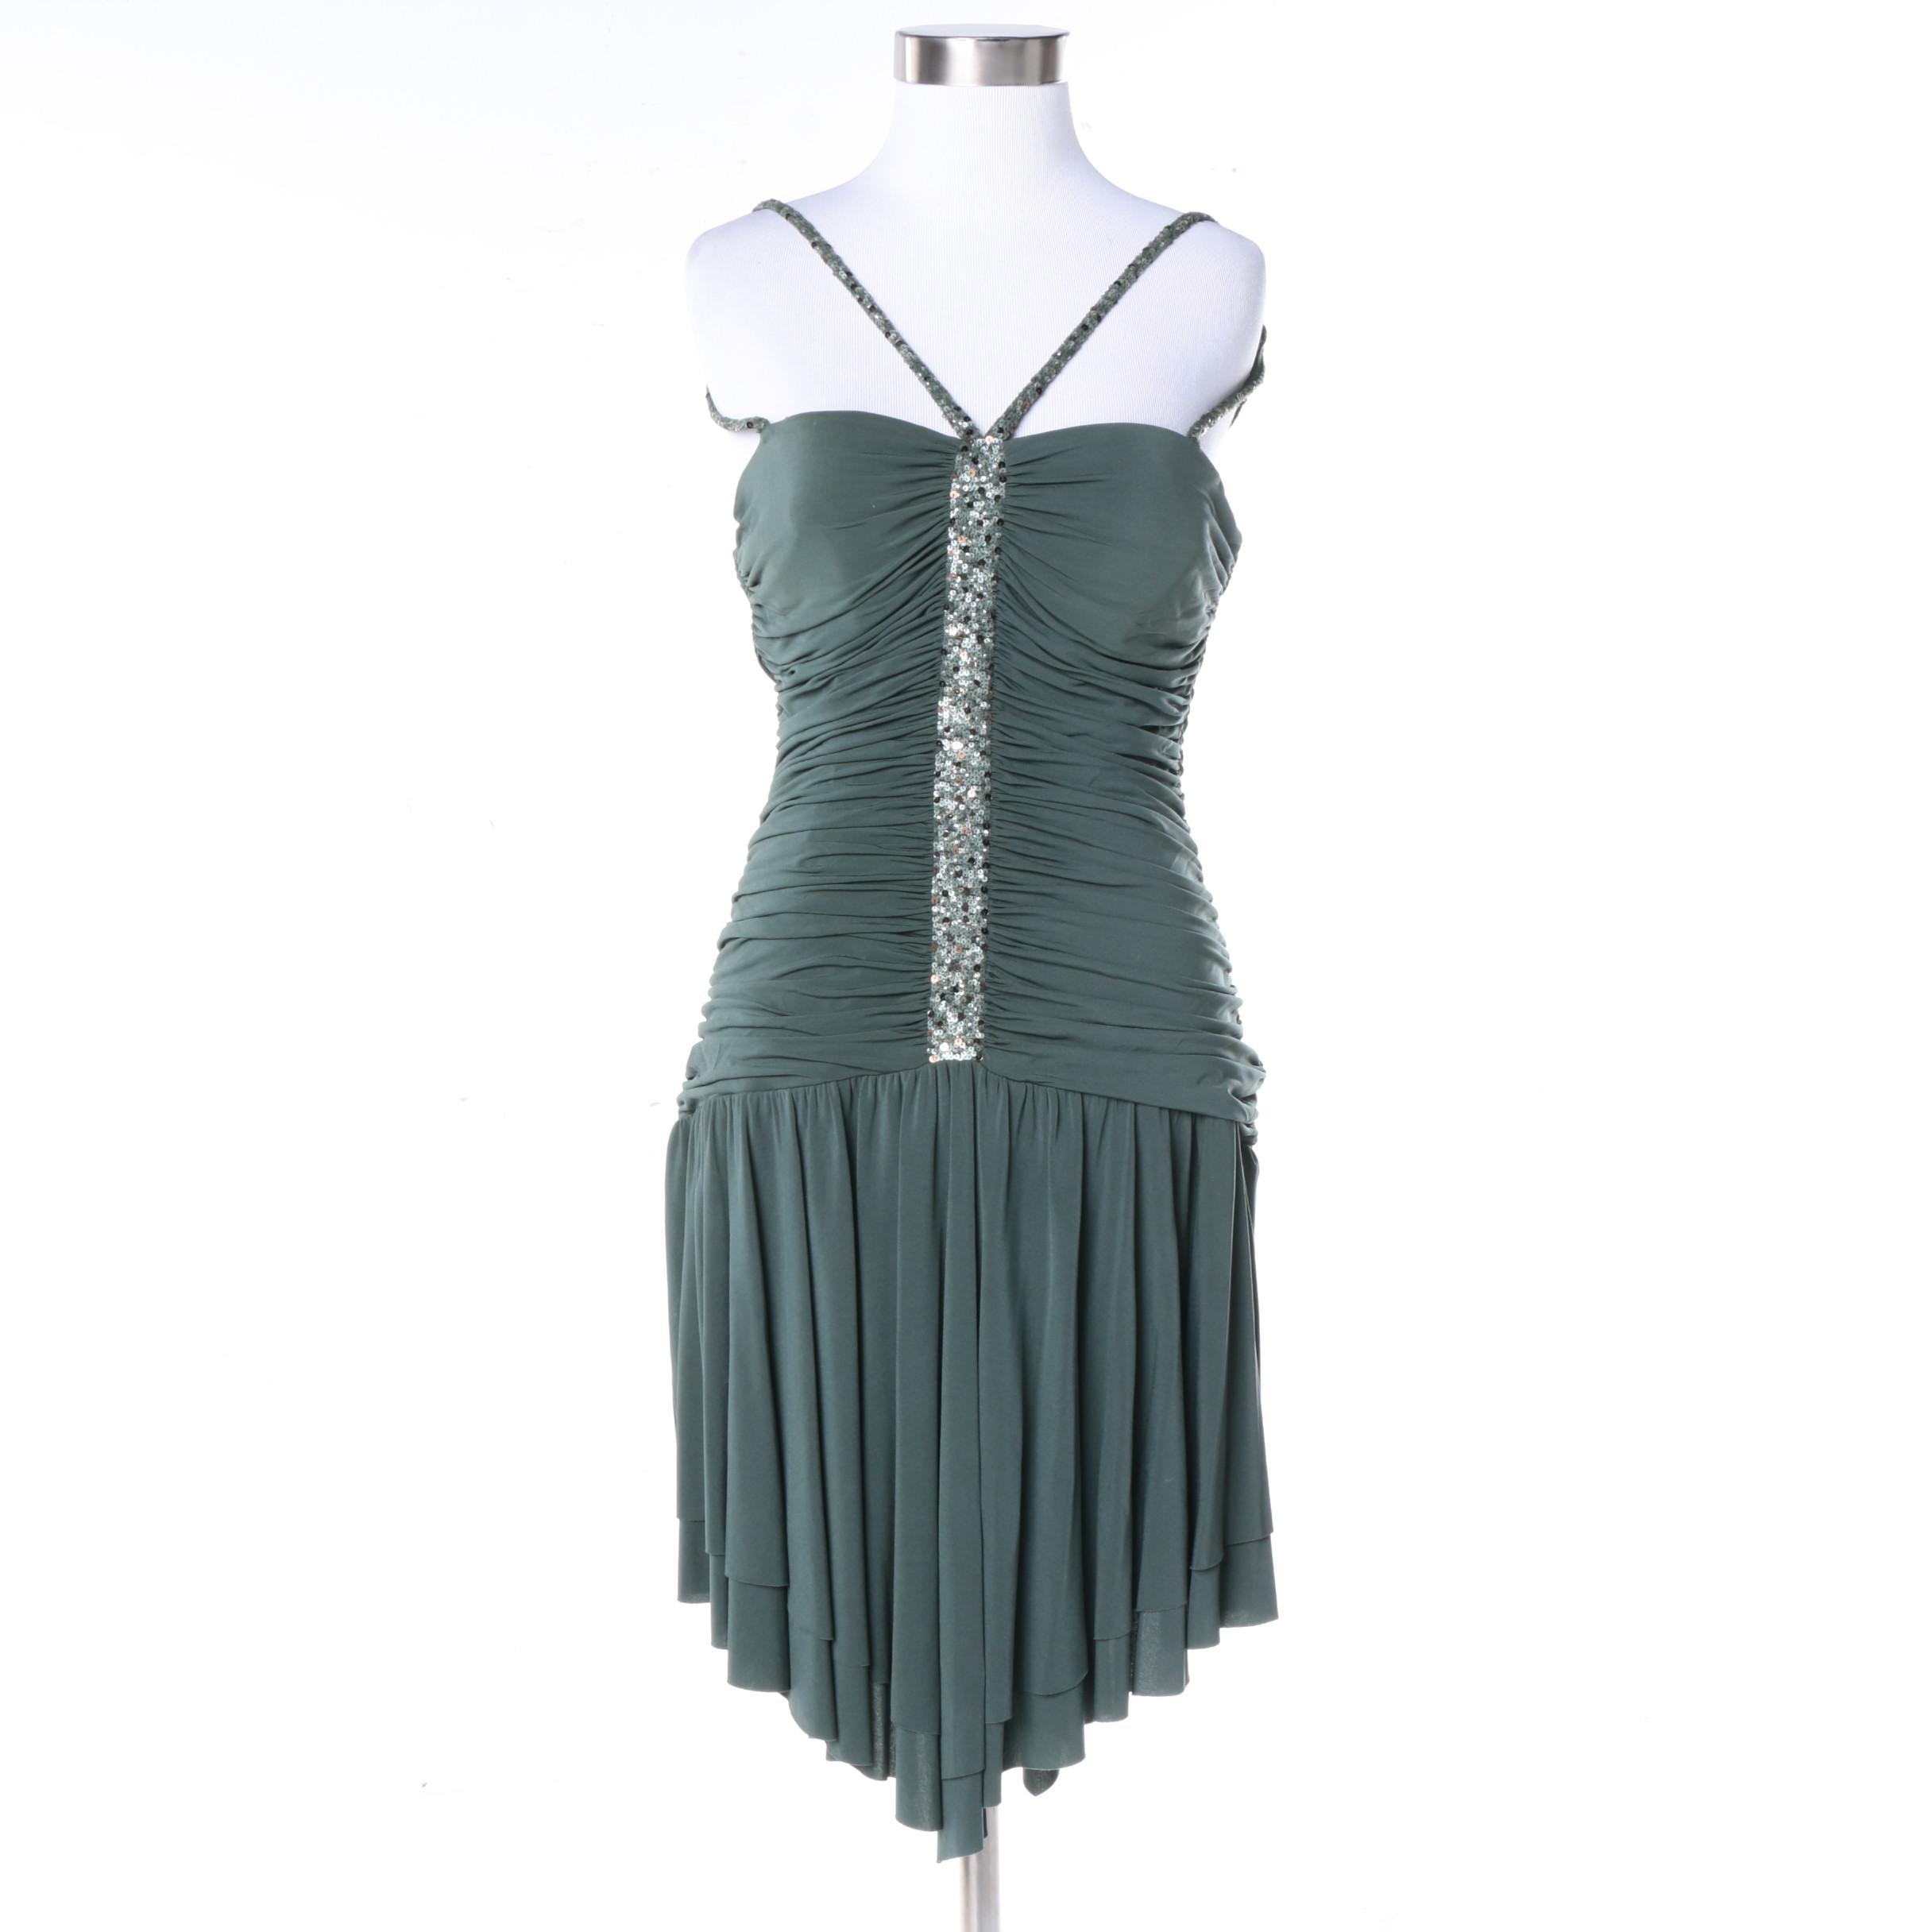 BCBG Max Azria Green Sleeveless Cocktail Dress